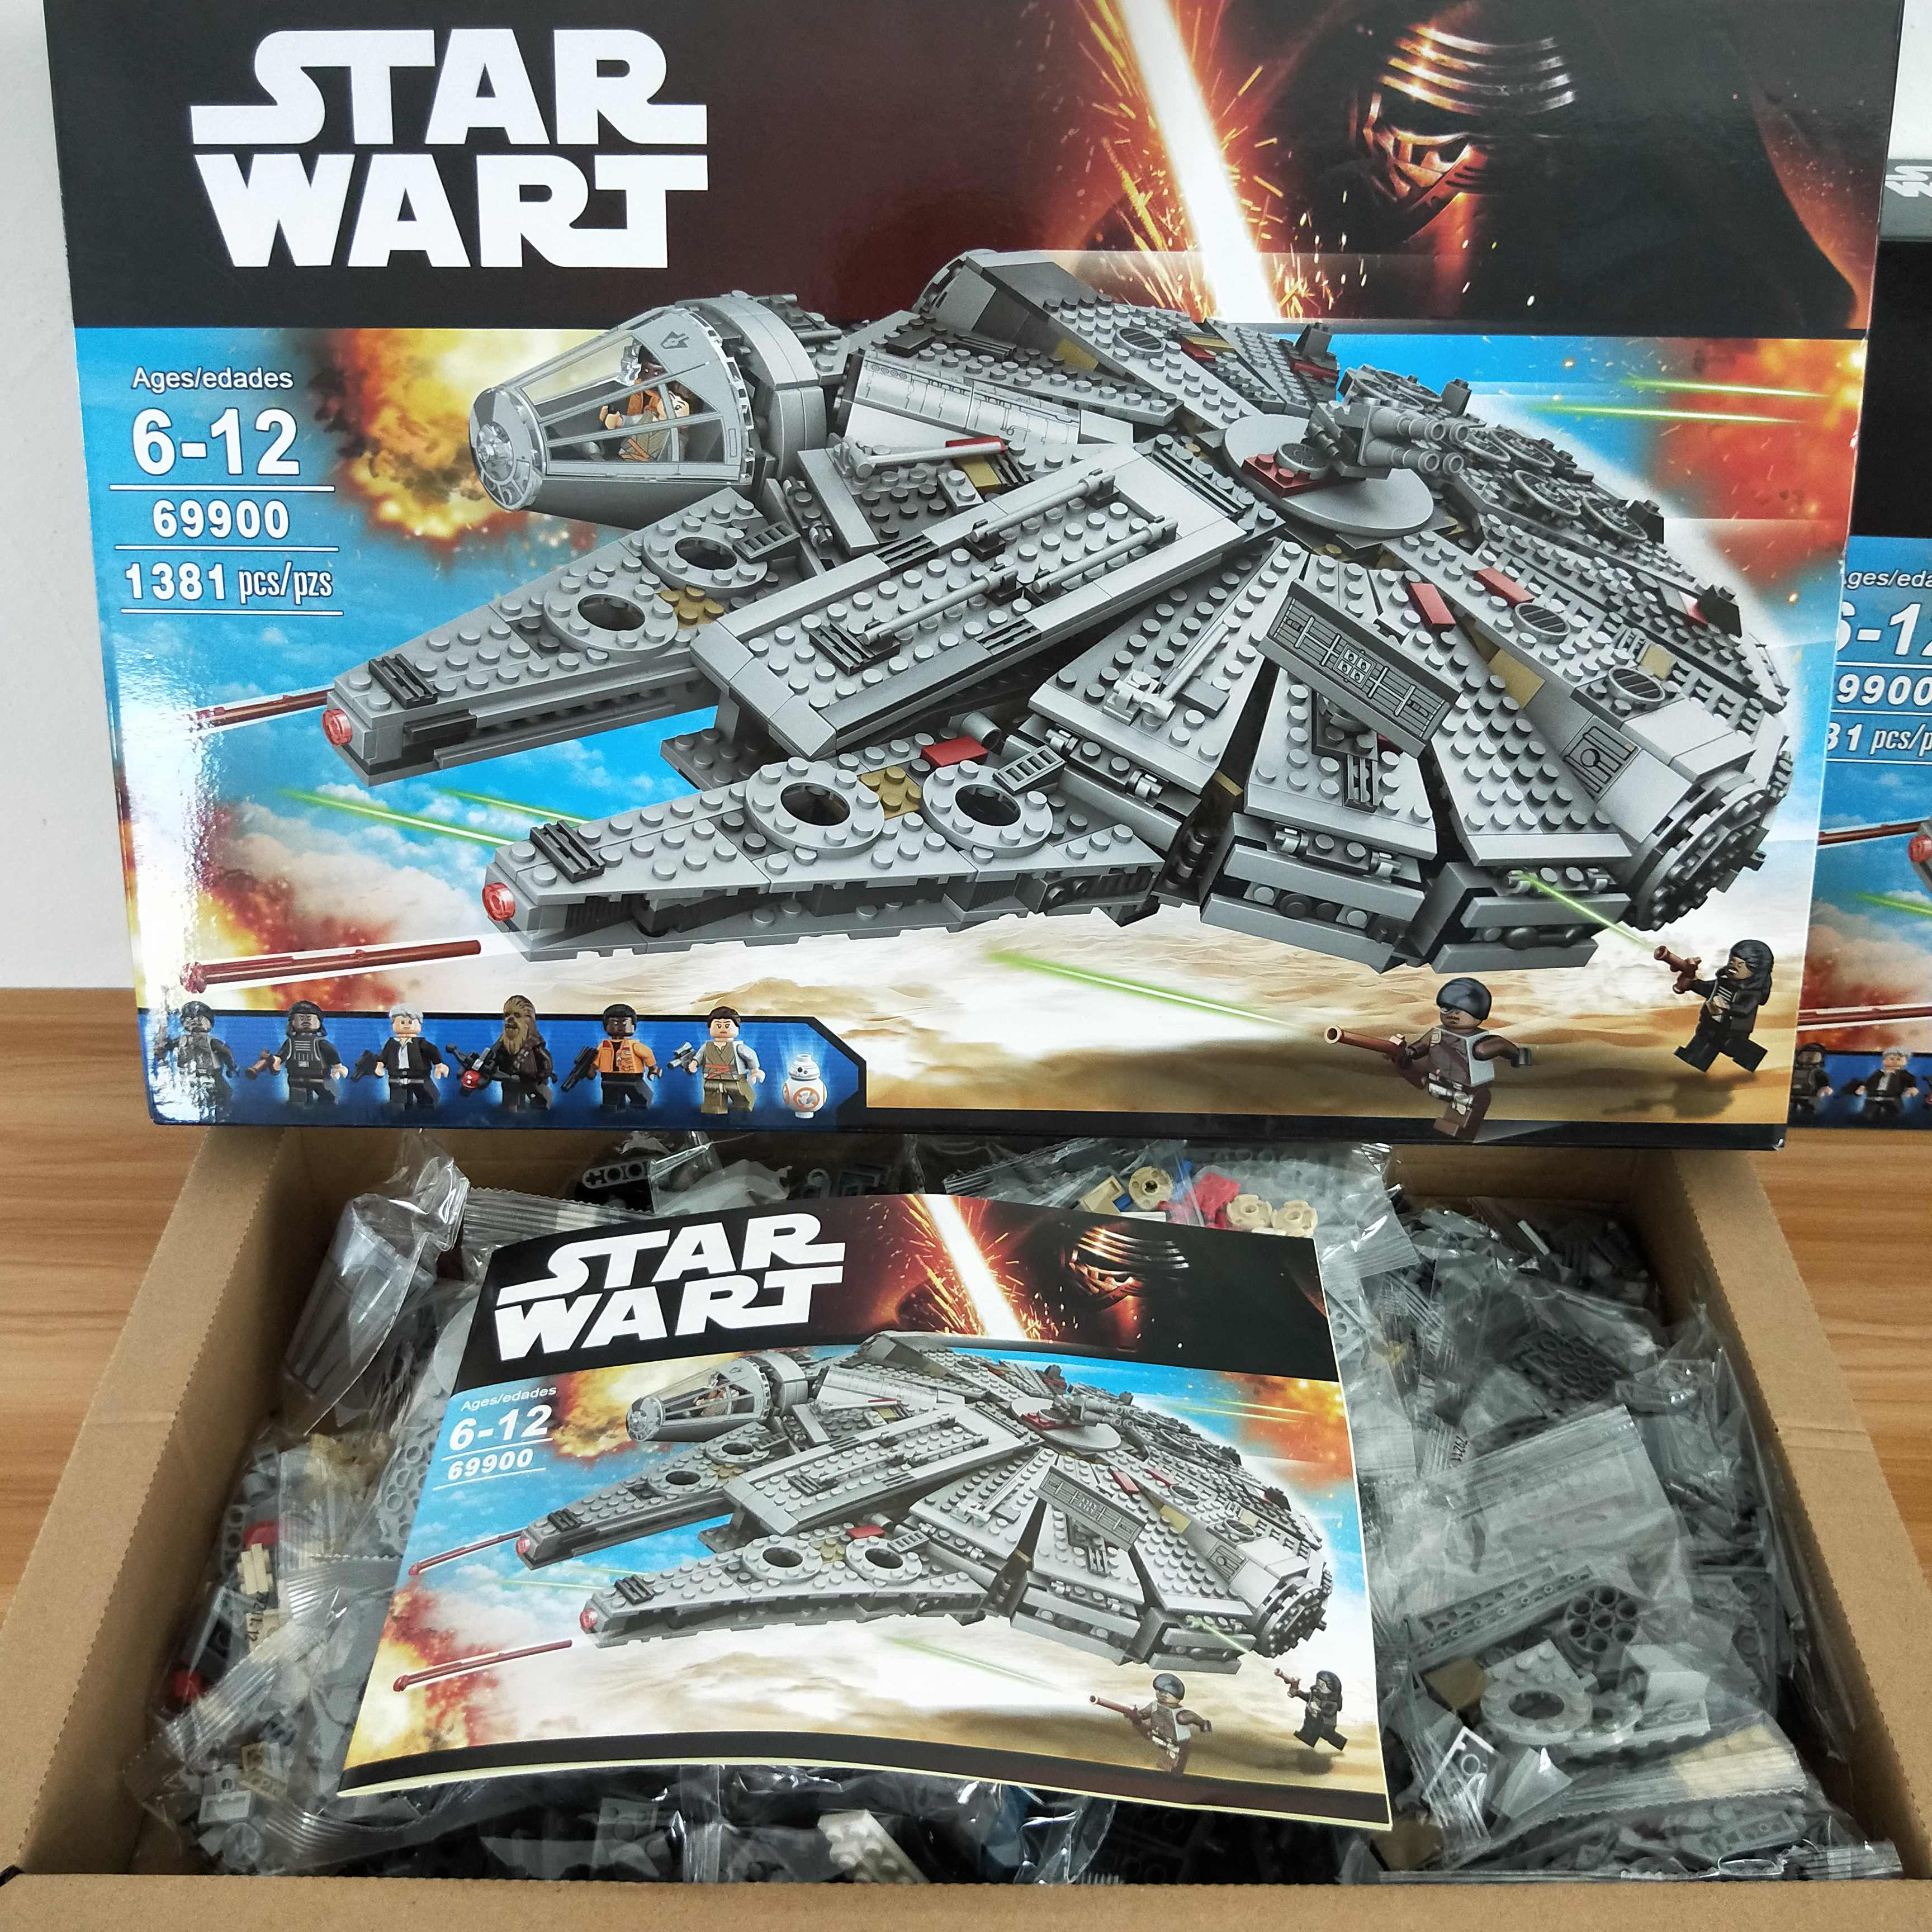 Millennium Compatible with Iegoset 75105 05007 79211 building blocks Awakens Star Falcon Wars Bricks toys for Kids 75105 10467